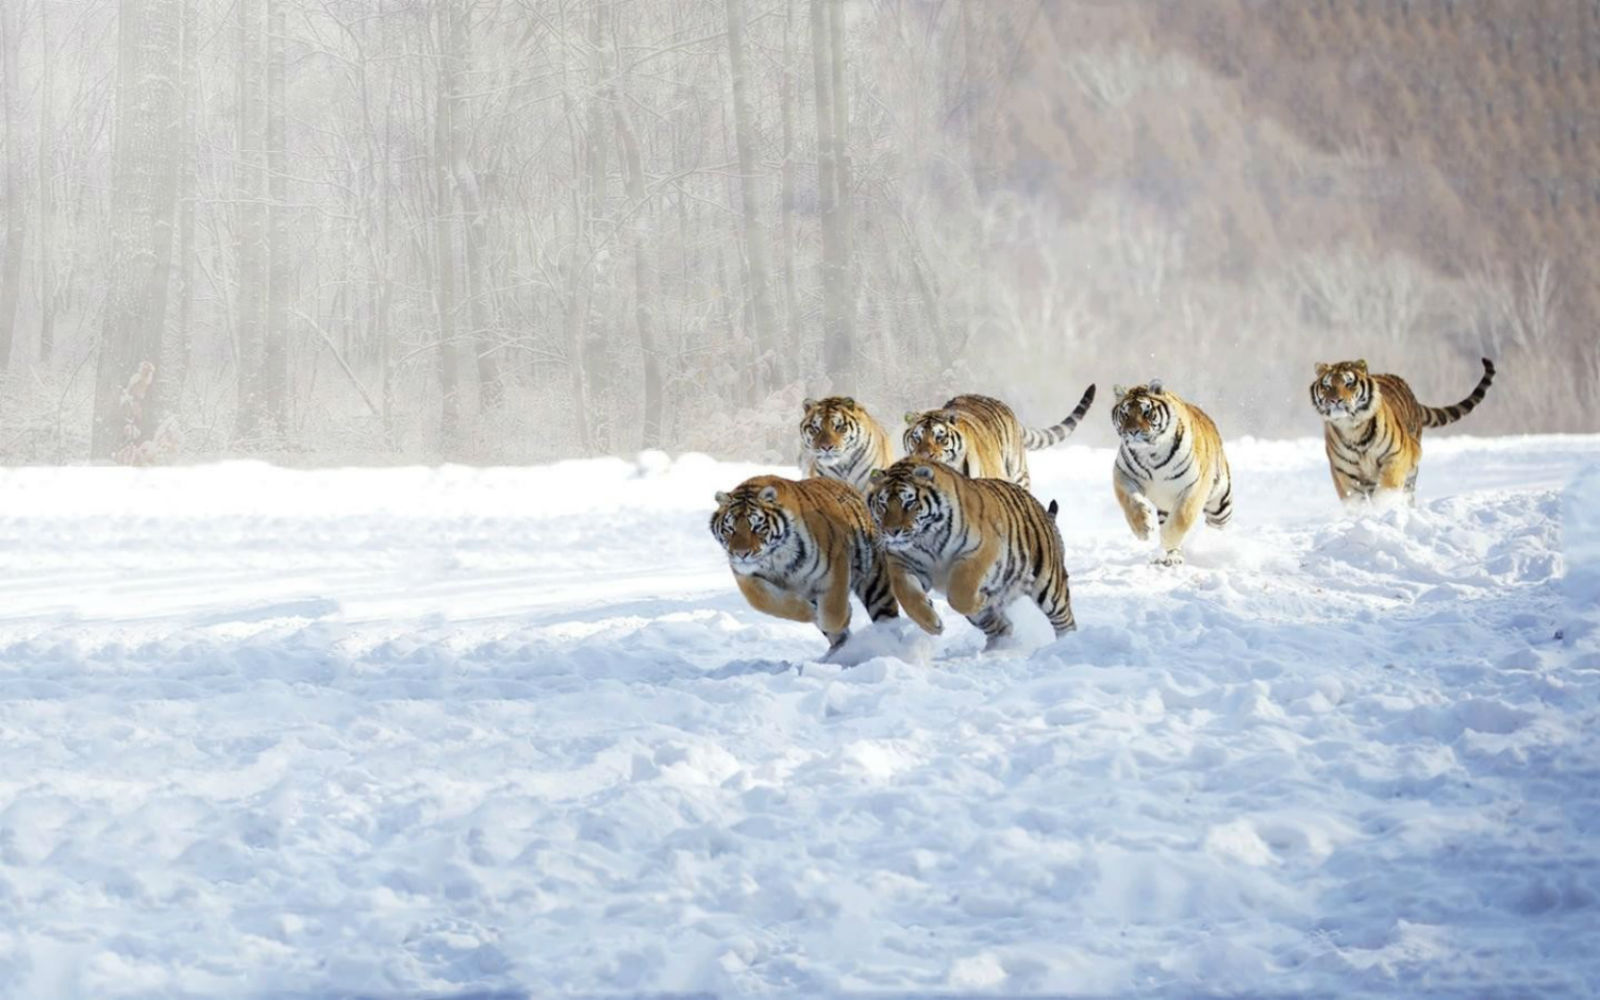 Animals Tiger Snow Wallpapers Hd Desktop And Mobile: Tigers_animals_cats_snow_winter_hd-wallpaper-1585228